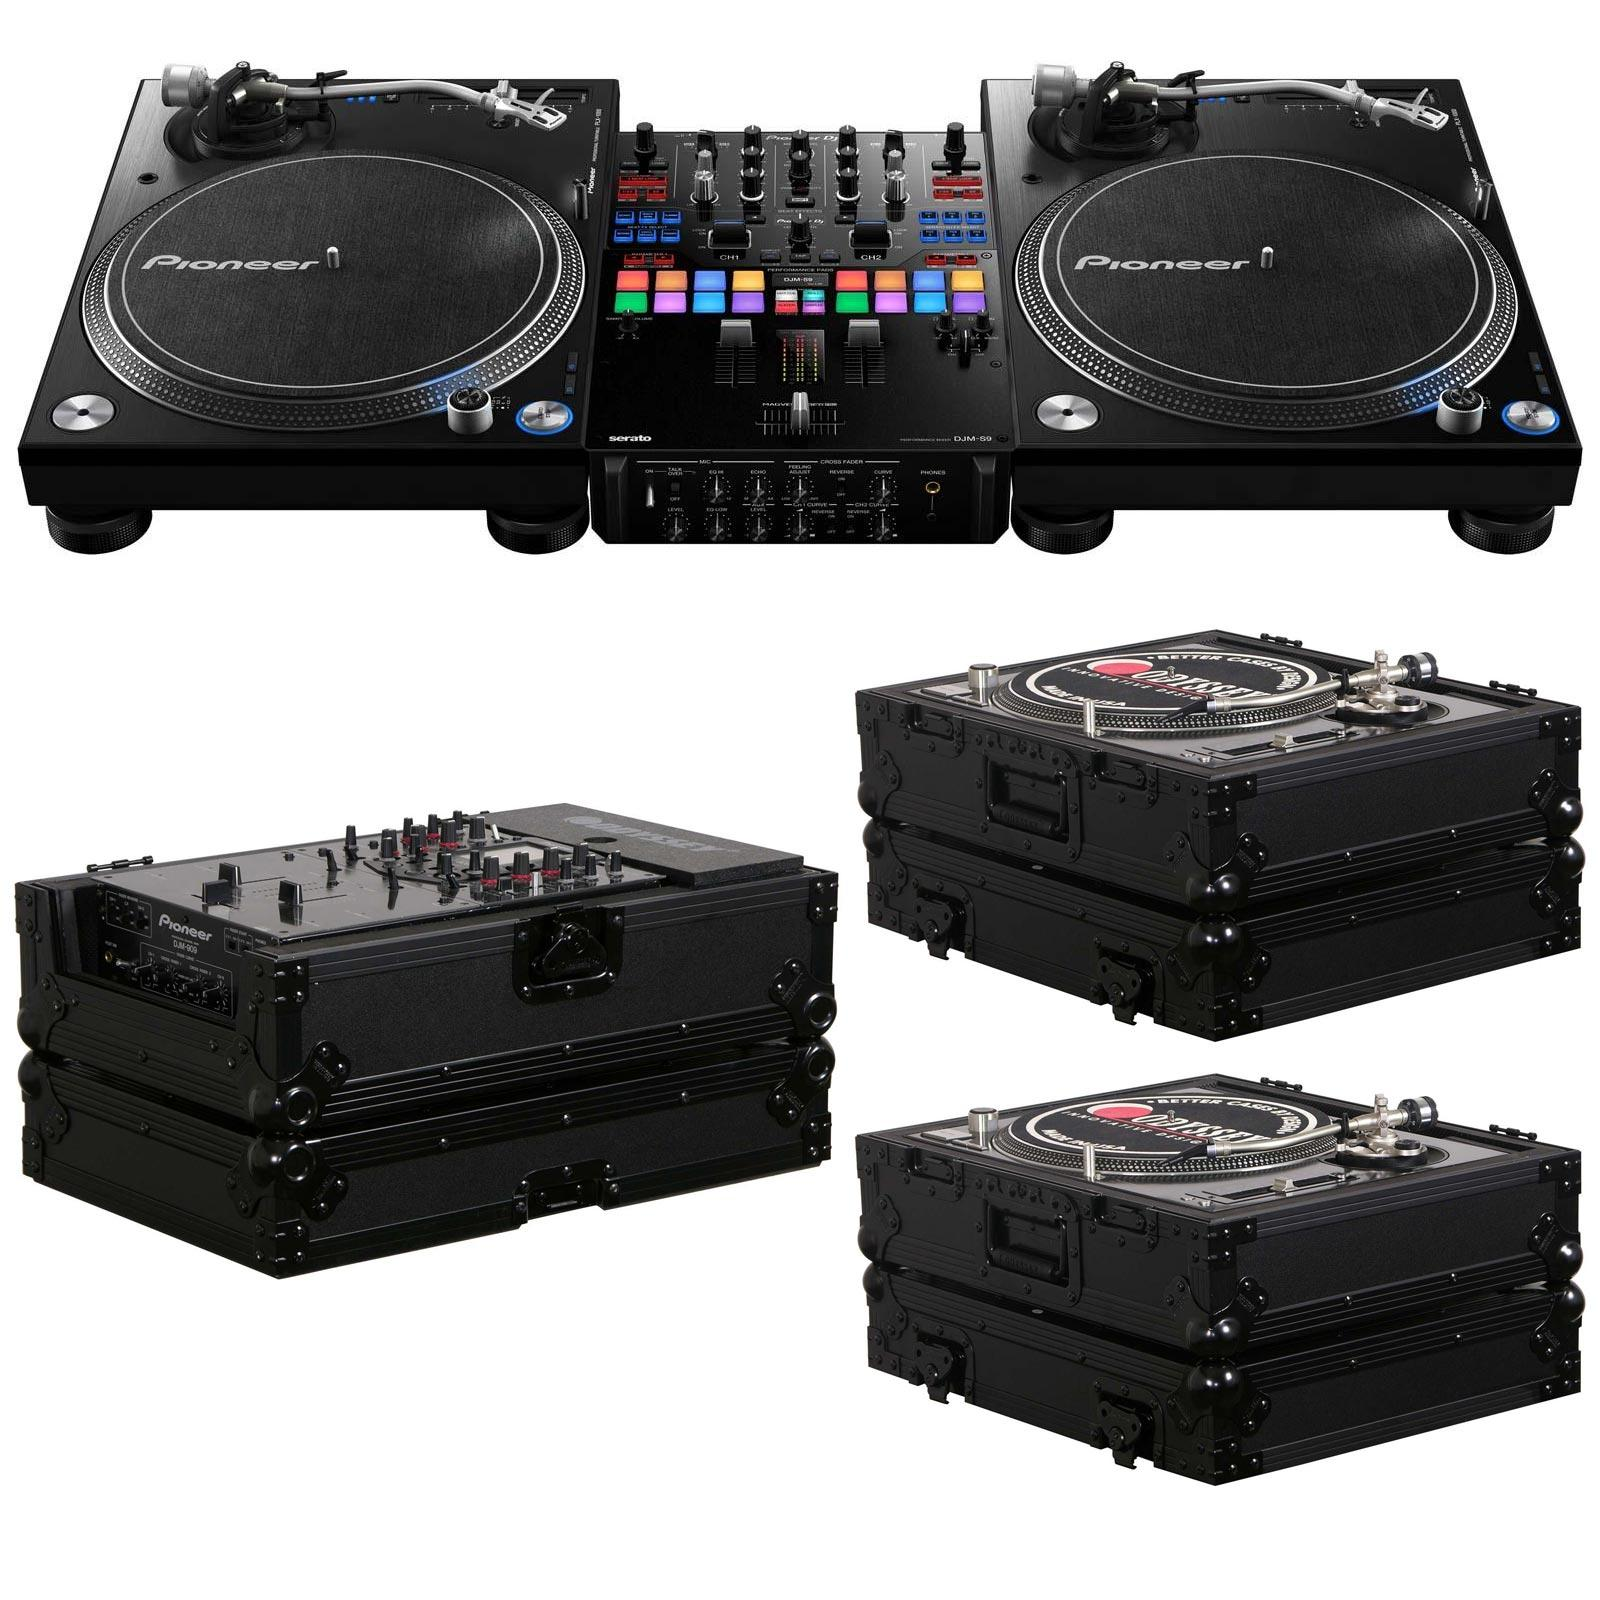 pioneer djm s9 serato mixer 2 plx 1000 turntable bundle with free flight cases agiprodj. Black Bedroom Furniture Sets. Home Design Ideas